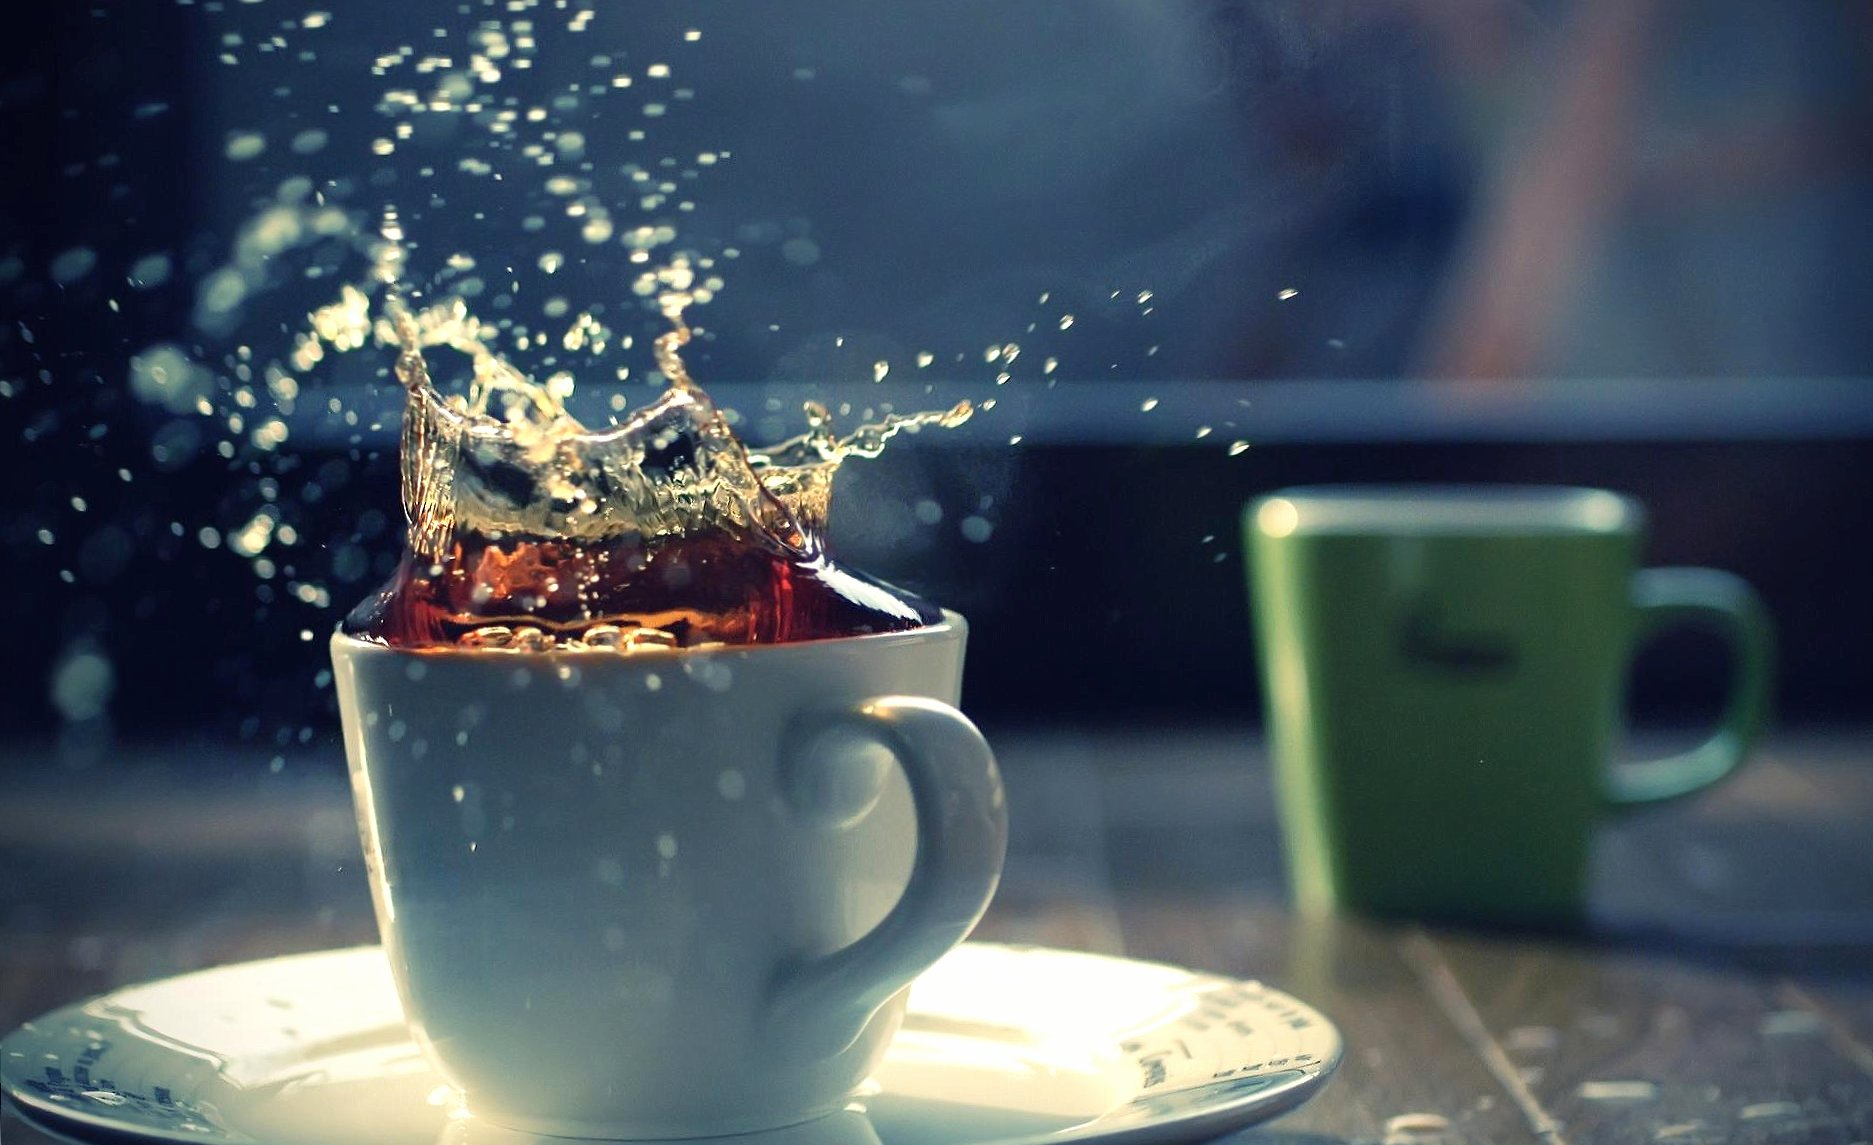 Tea explosion wallpapers HD quality